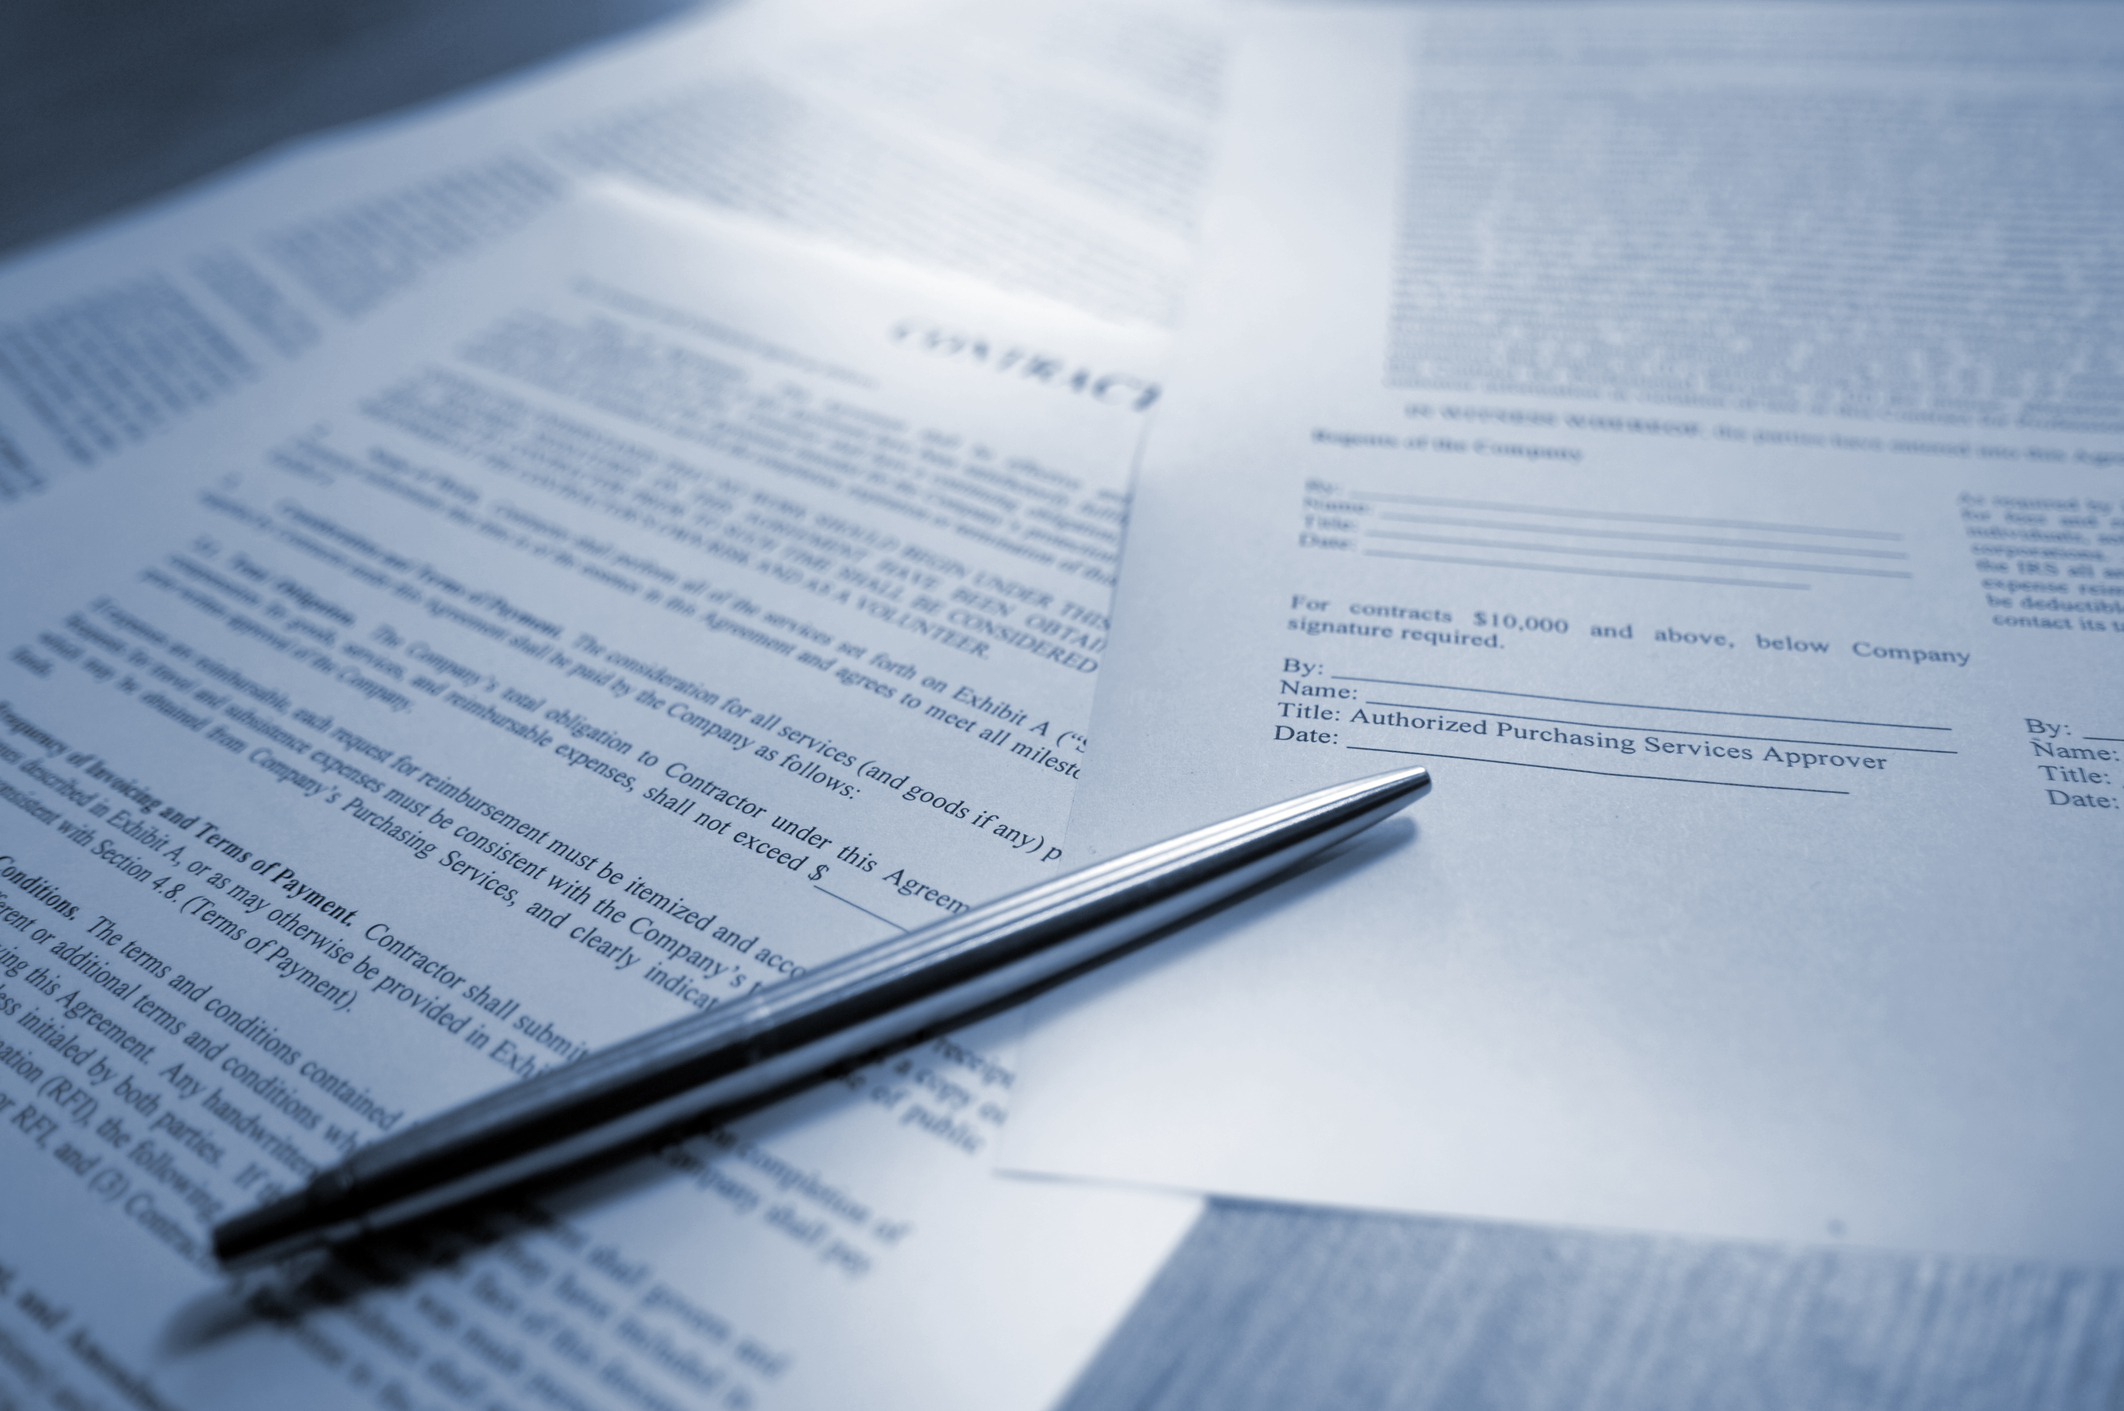 Backdating corporate documents